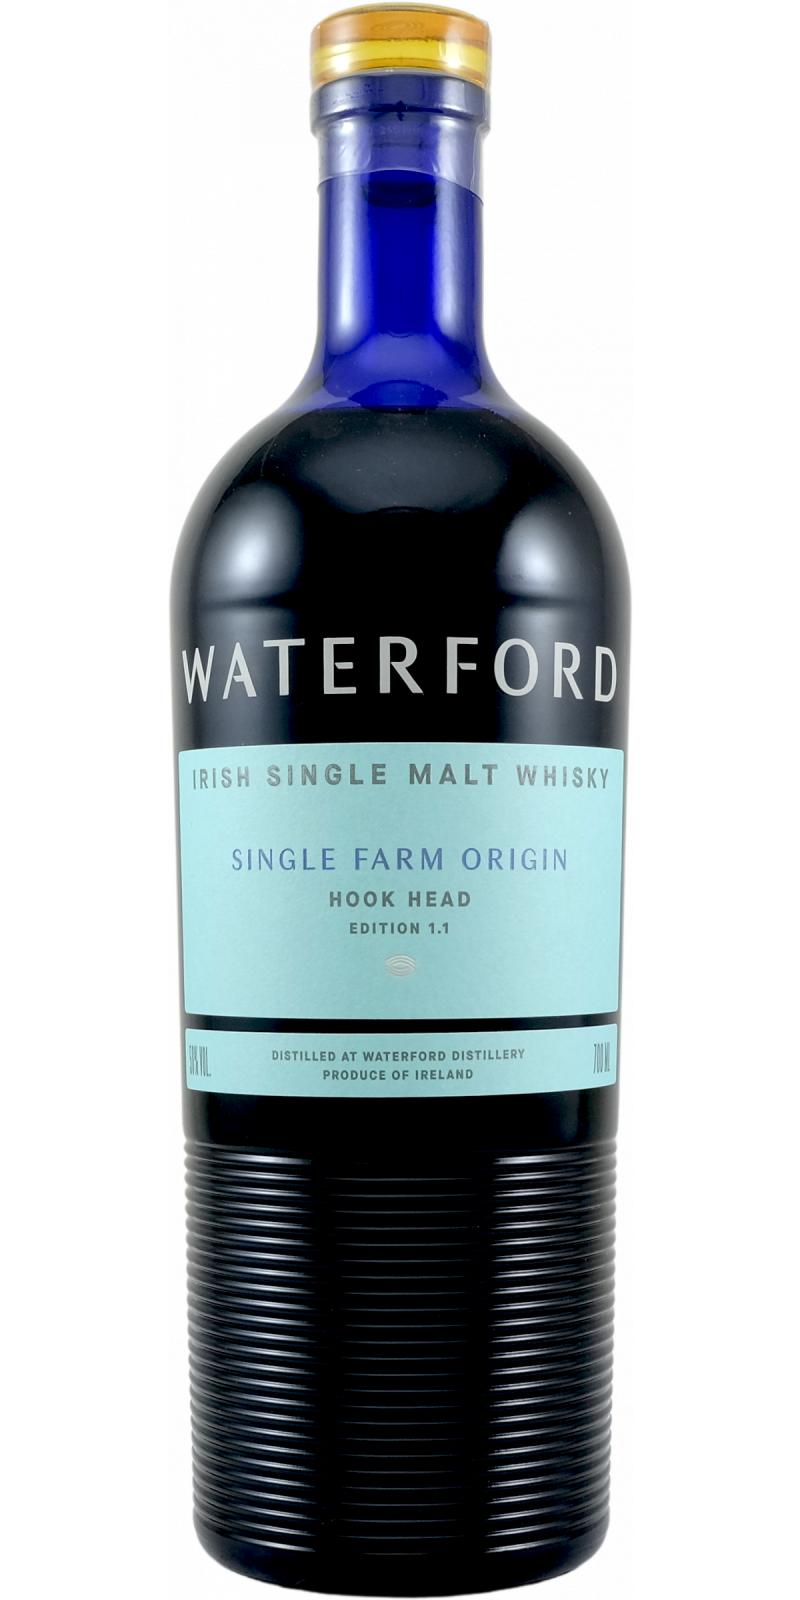 Waterford Hook Head: Edition 1.1